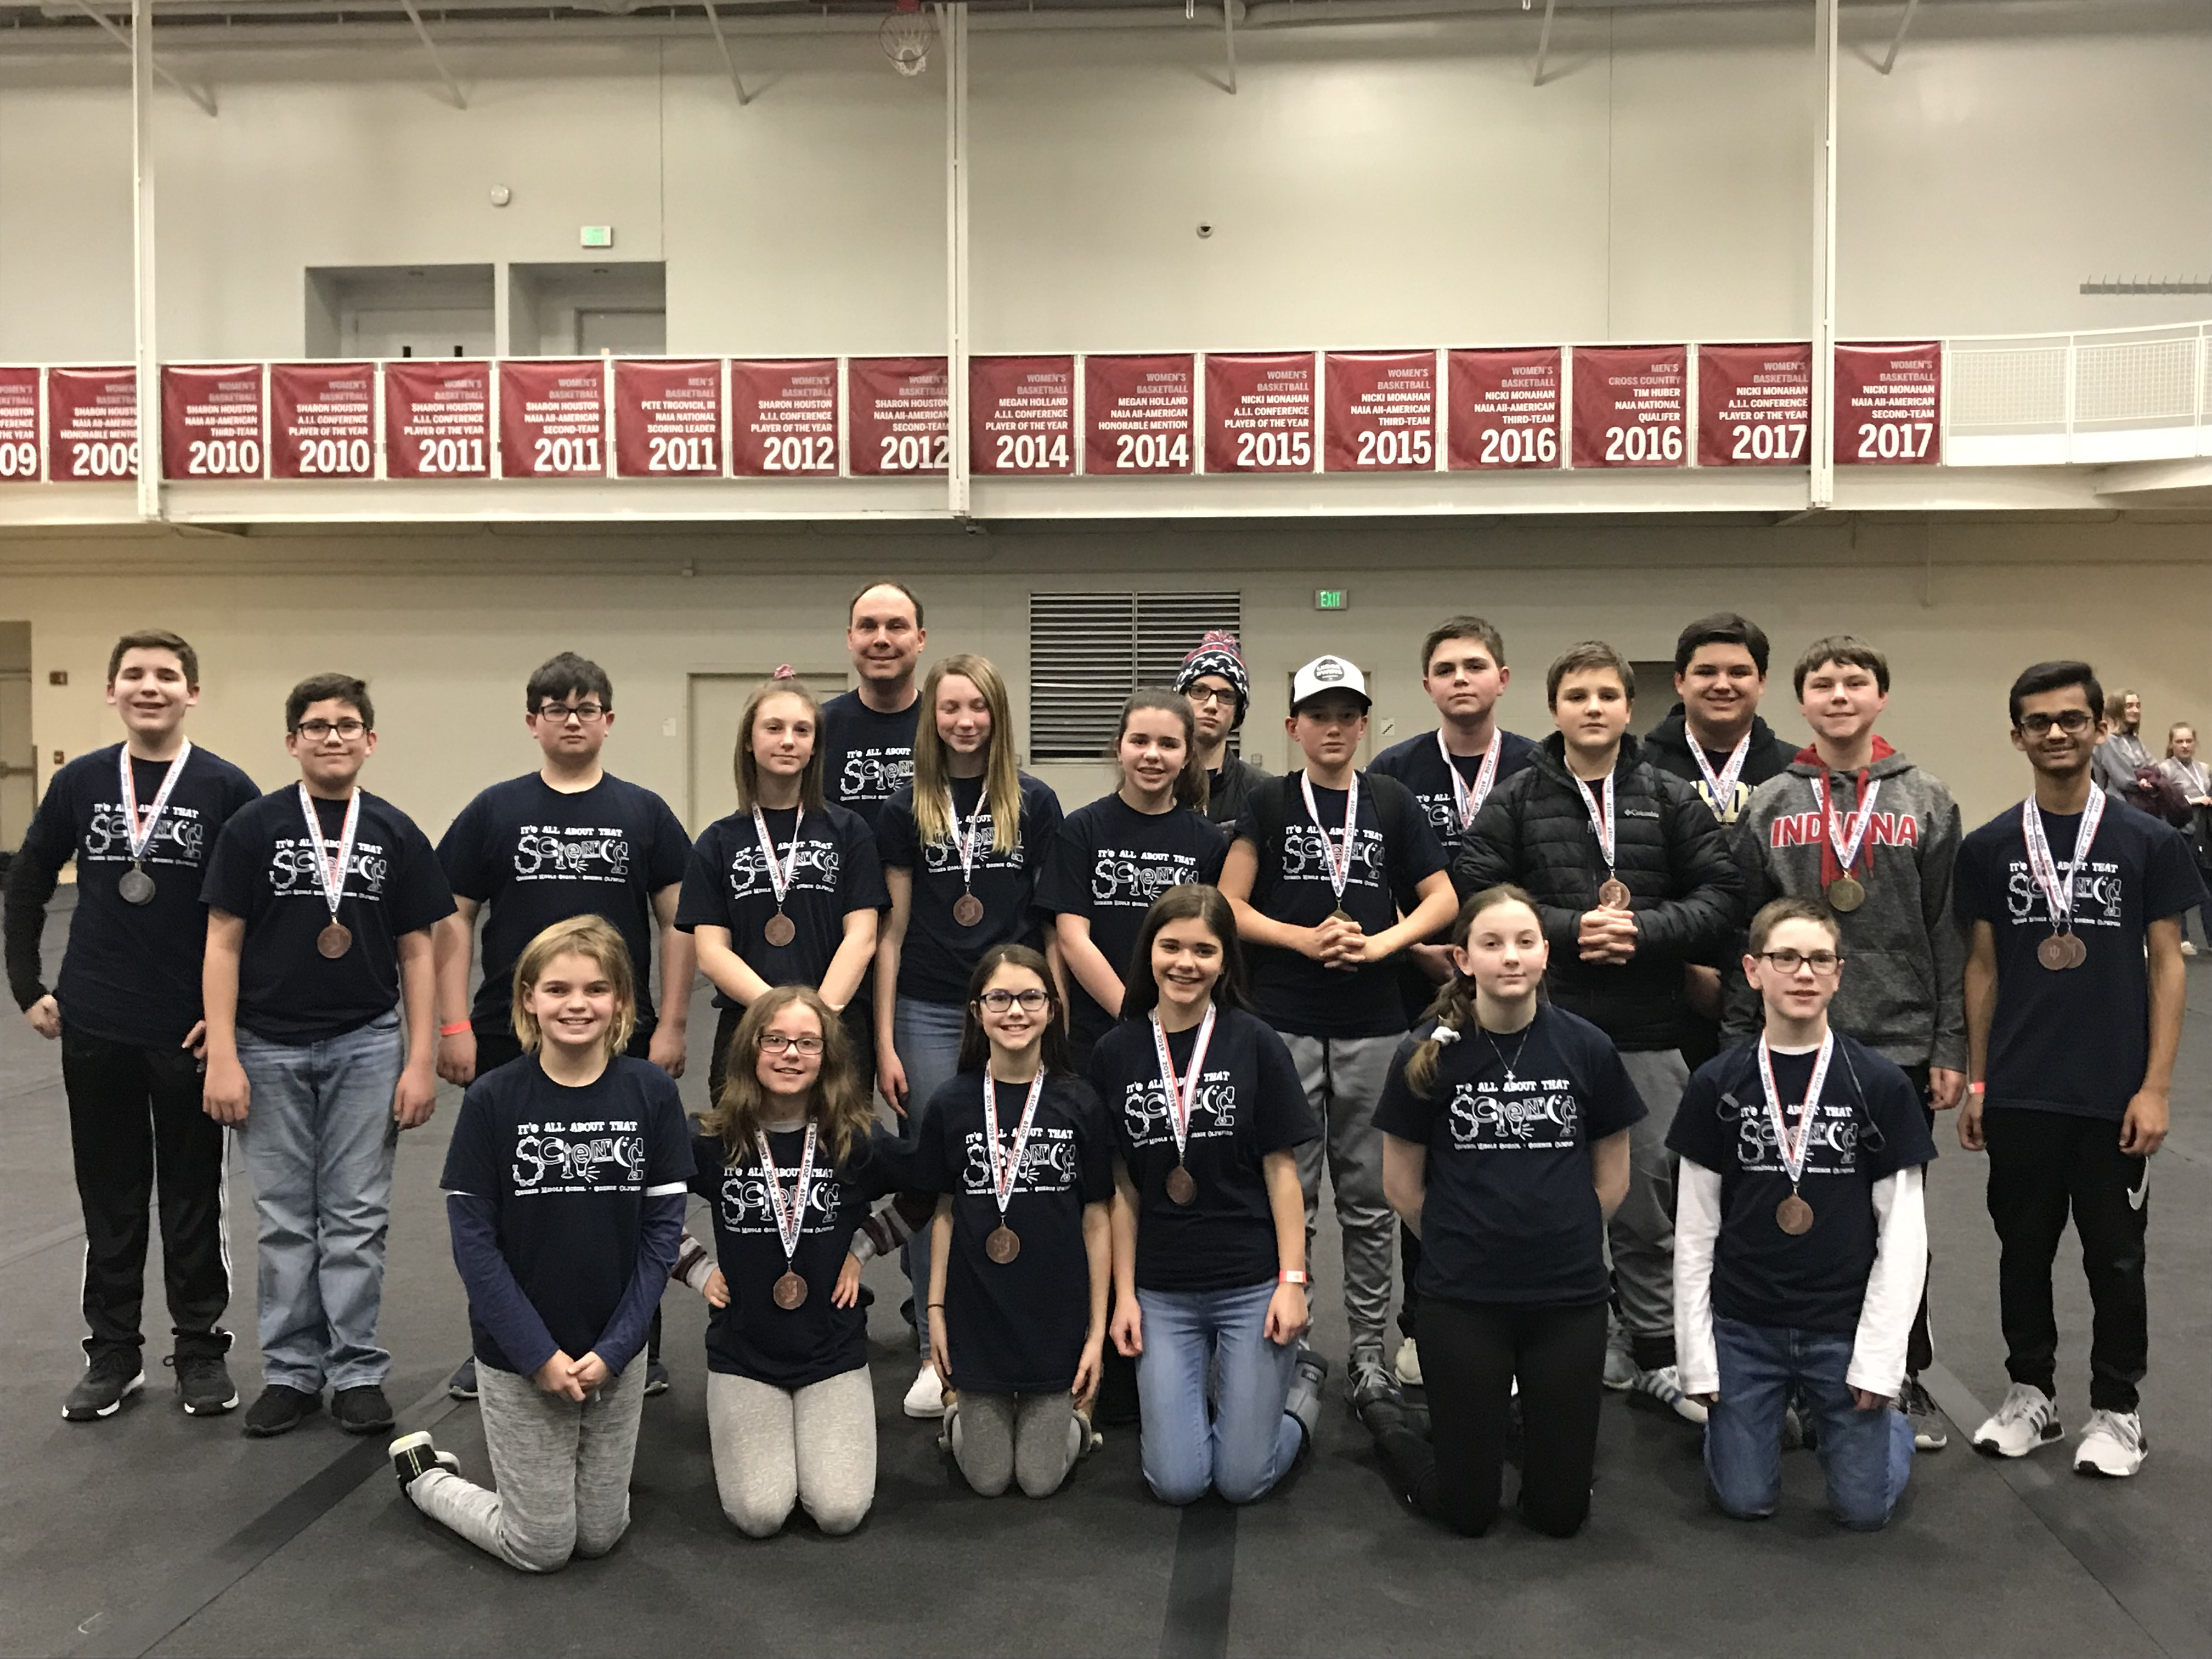 Congratulations to Grimmer's Science Olympiad Team, they qualified for state over the past weekend!